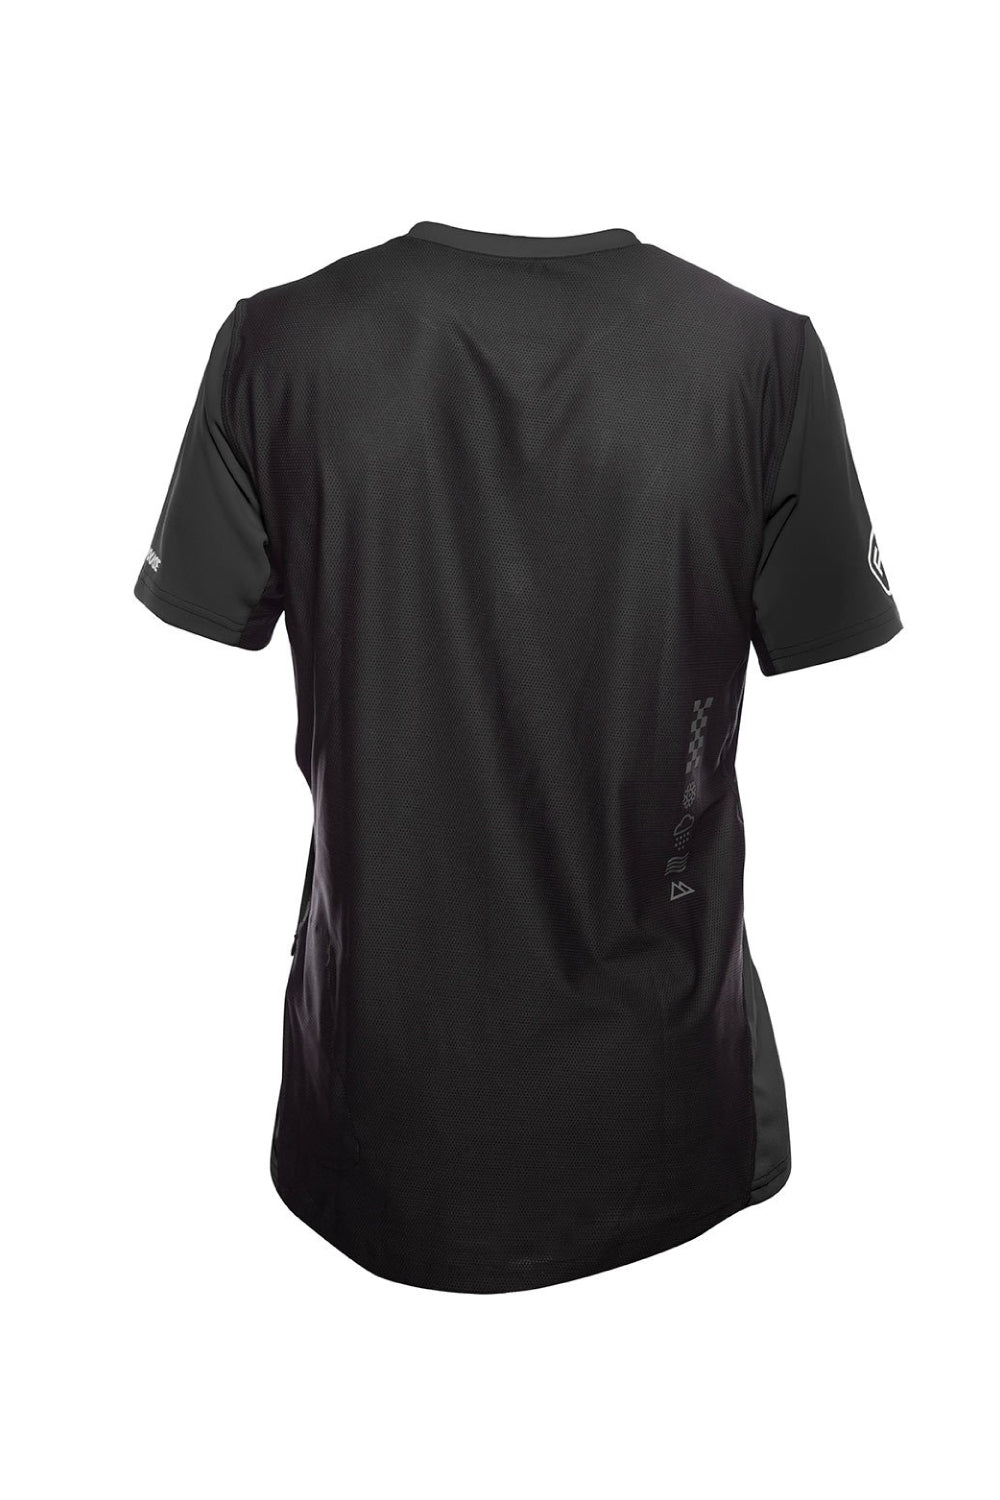 Fasthouse Alloy Star Short Sleeve Jersey